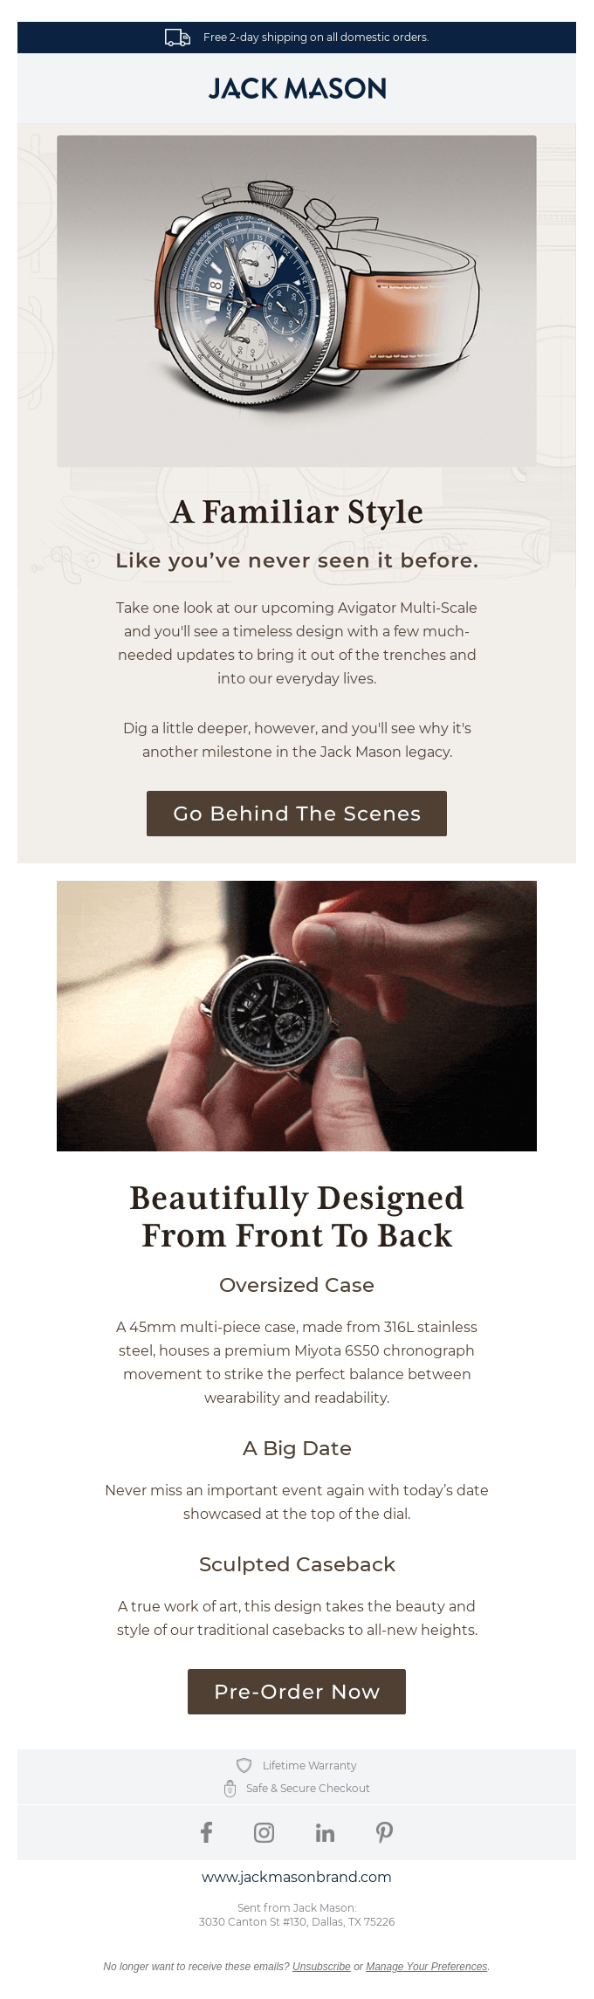 Example of a behind-the-scenes story used to promote a new product from Jack Mason